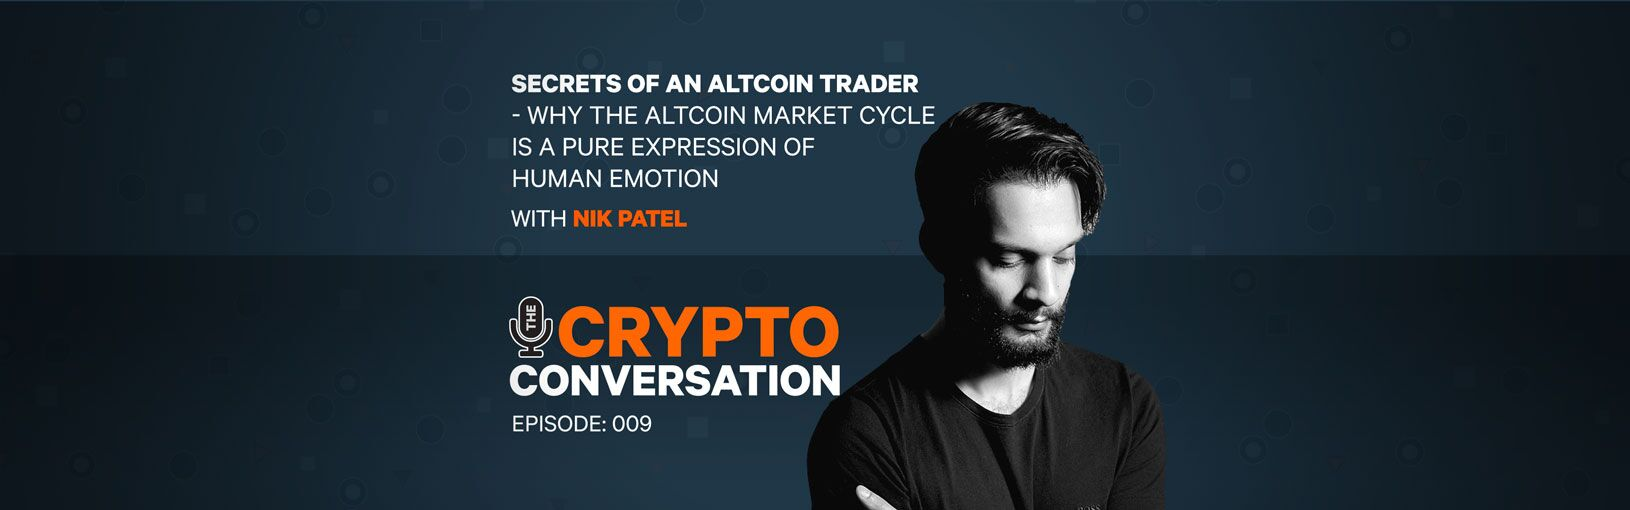 Altcoin Trader secrets of an altcoin trader - why the alt coin market cycle